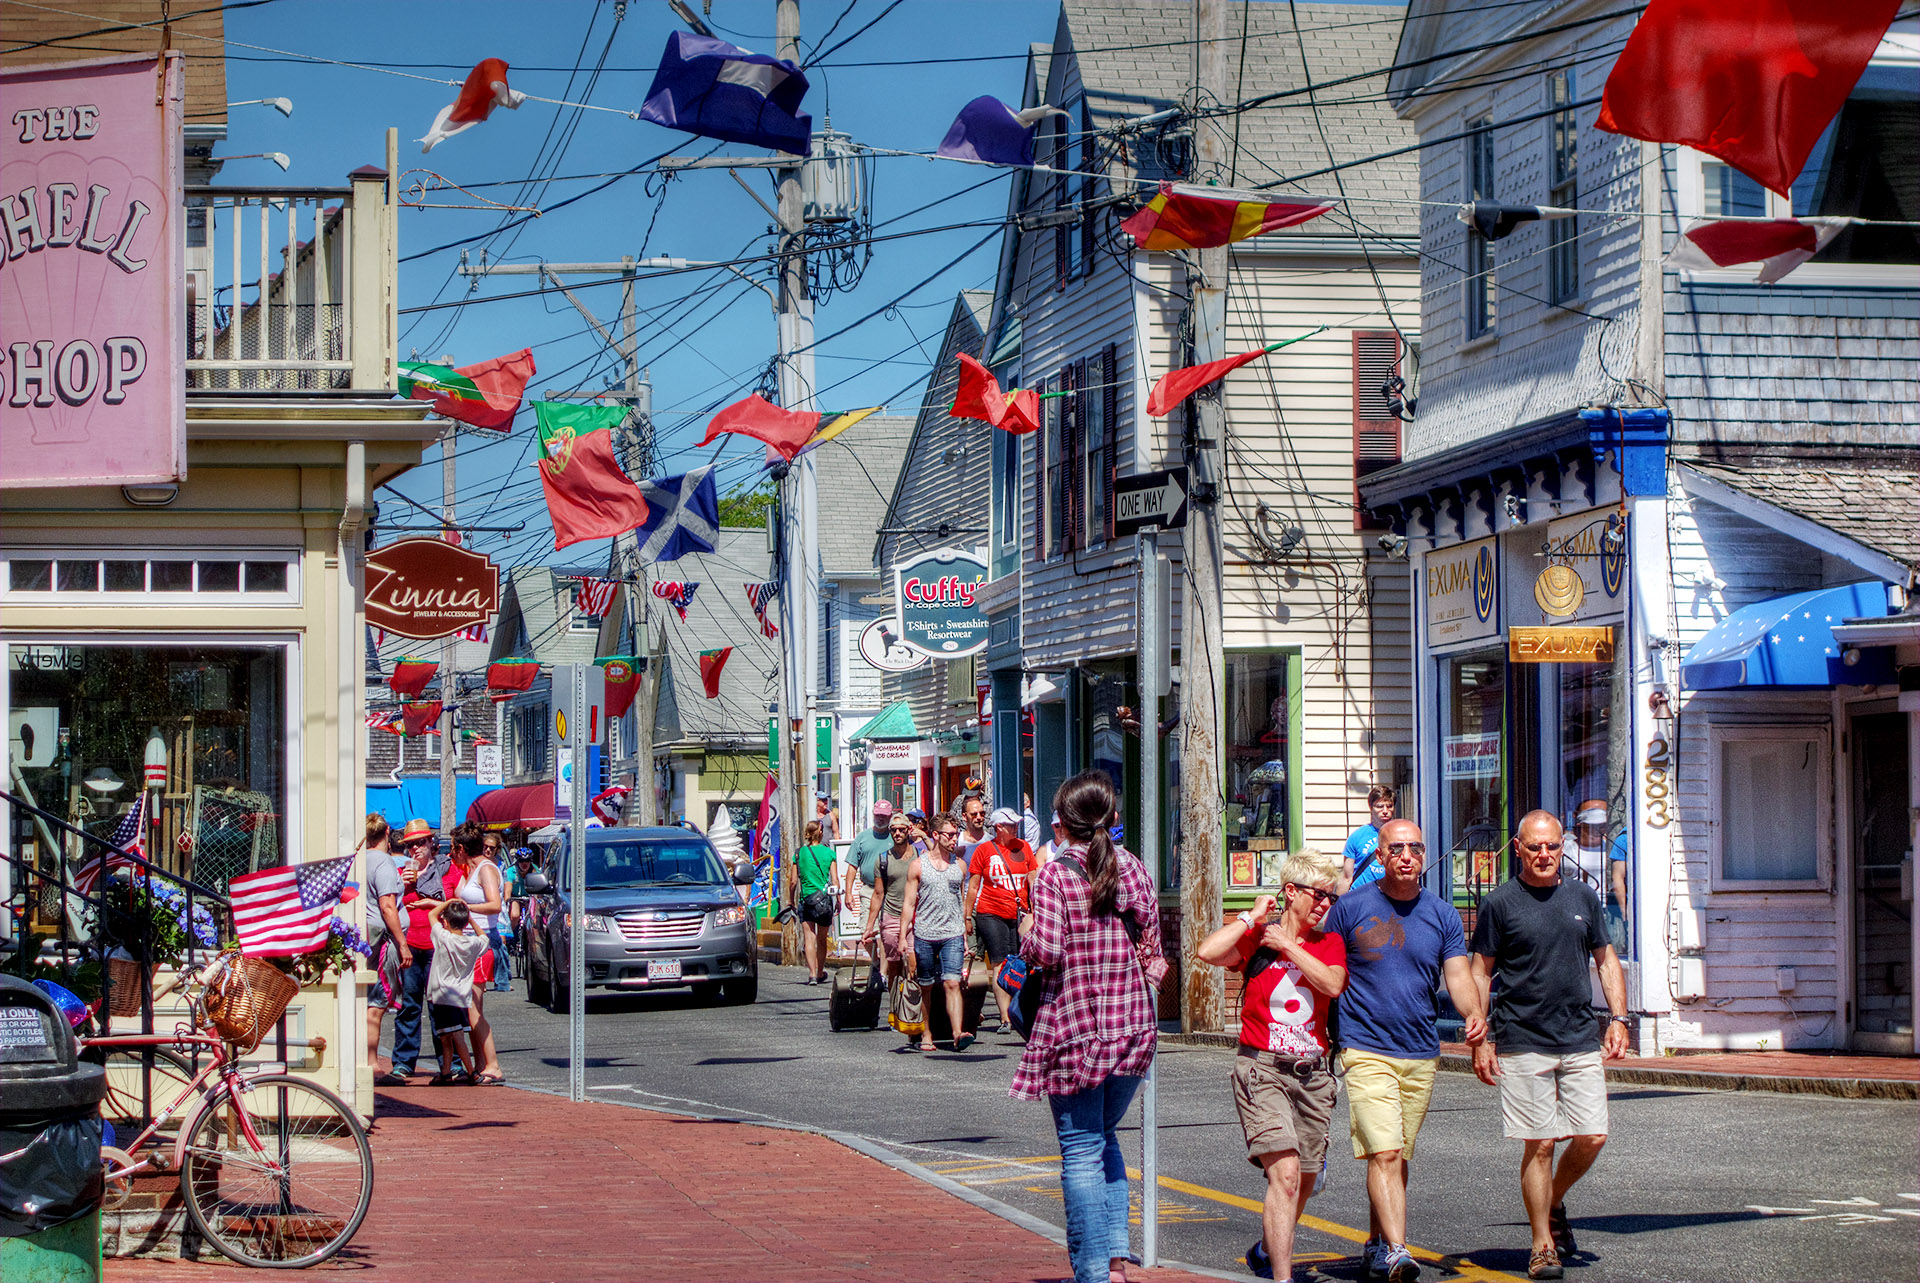 Commercial Street, Provincetown, MA.